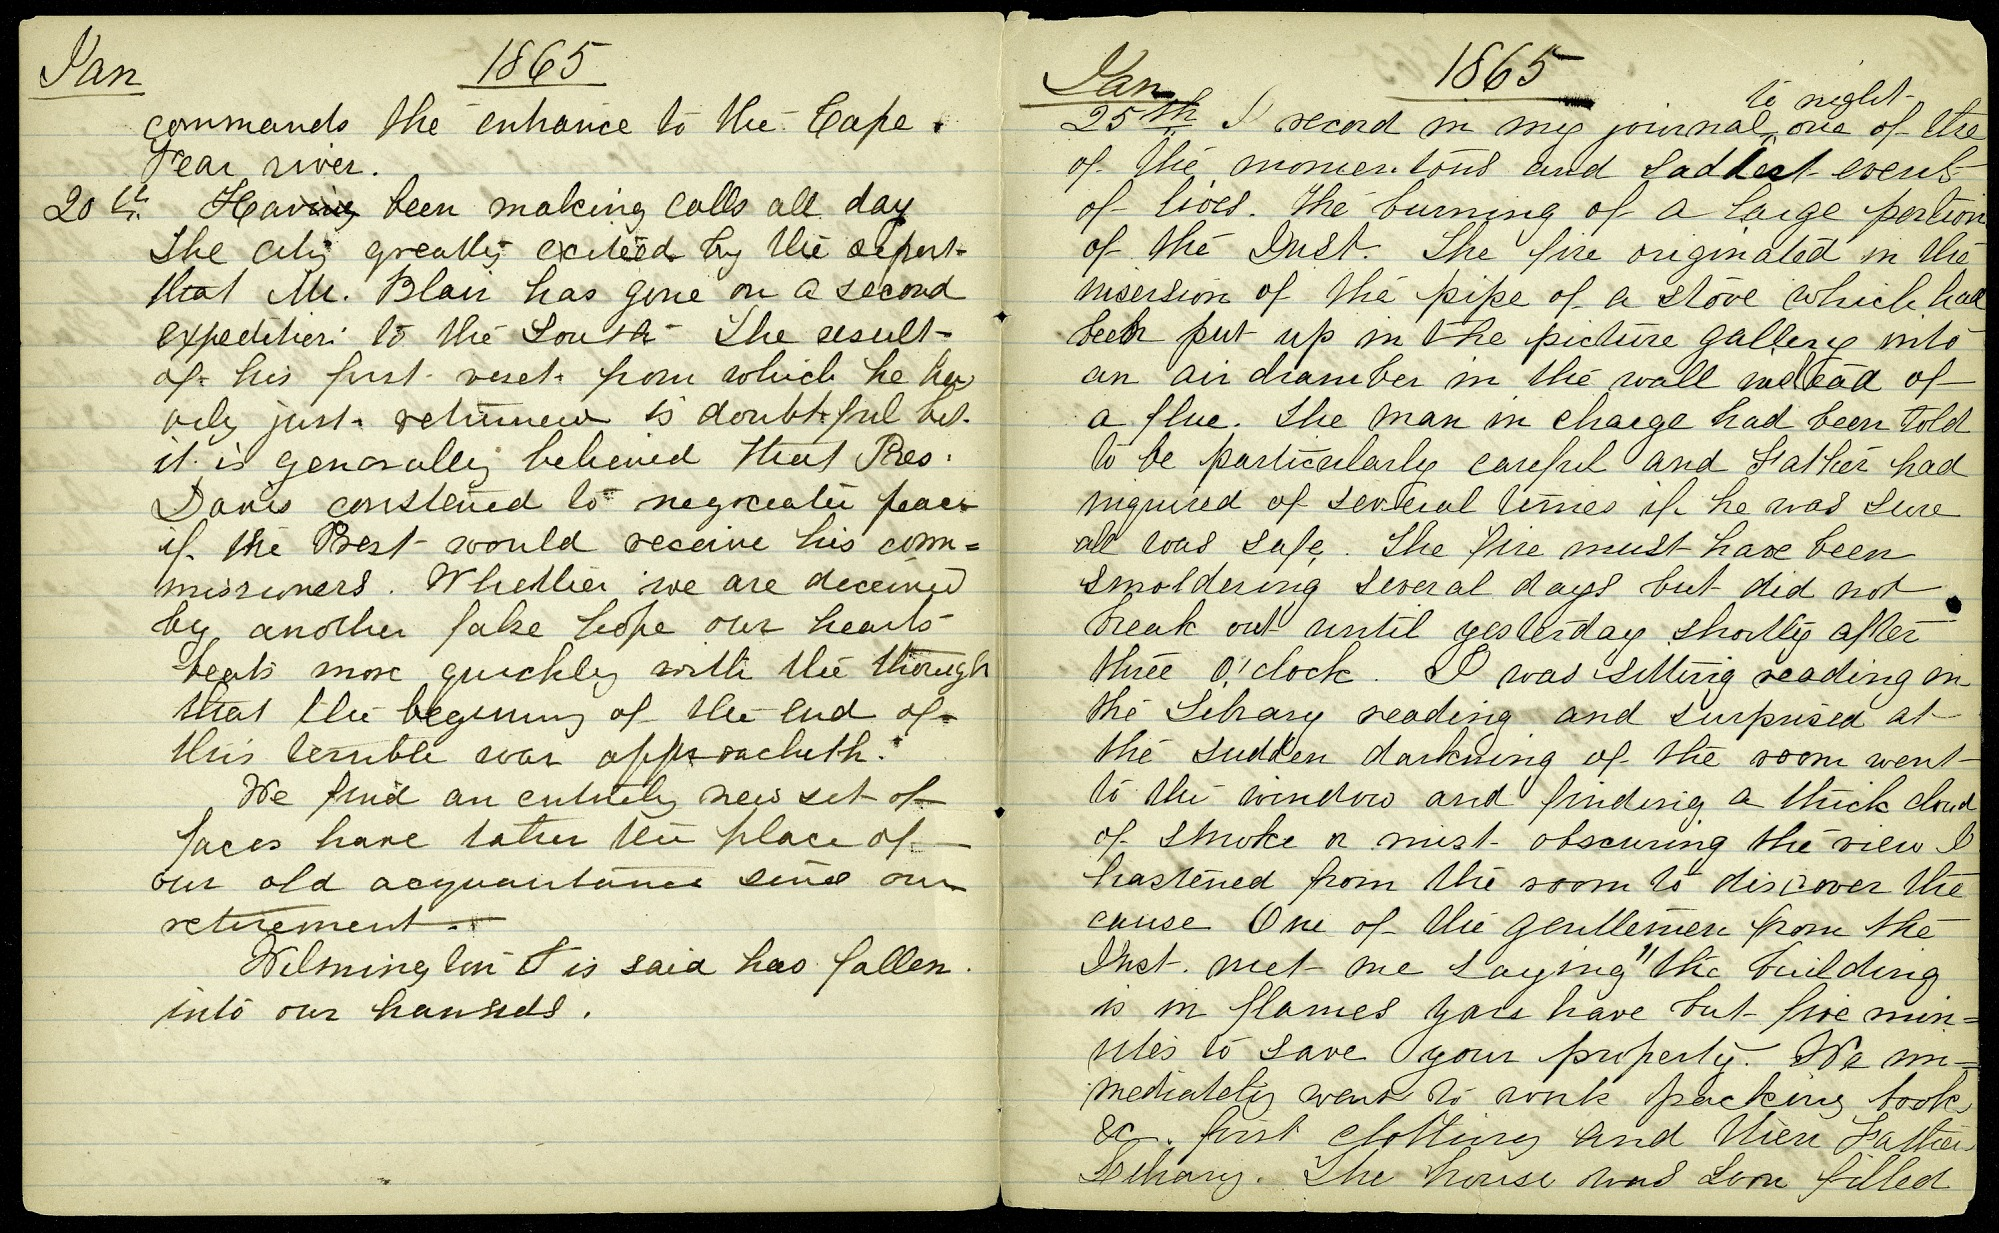 Mary Henry Diary Entries, January 25-26, 1865, Fire in the Castle